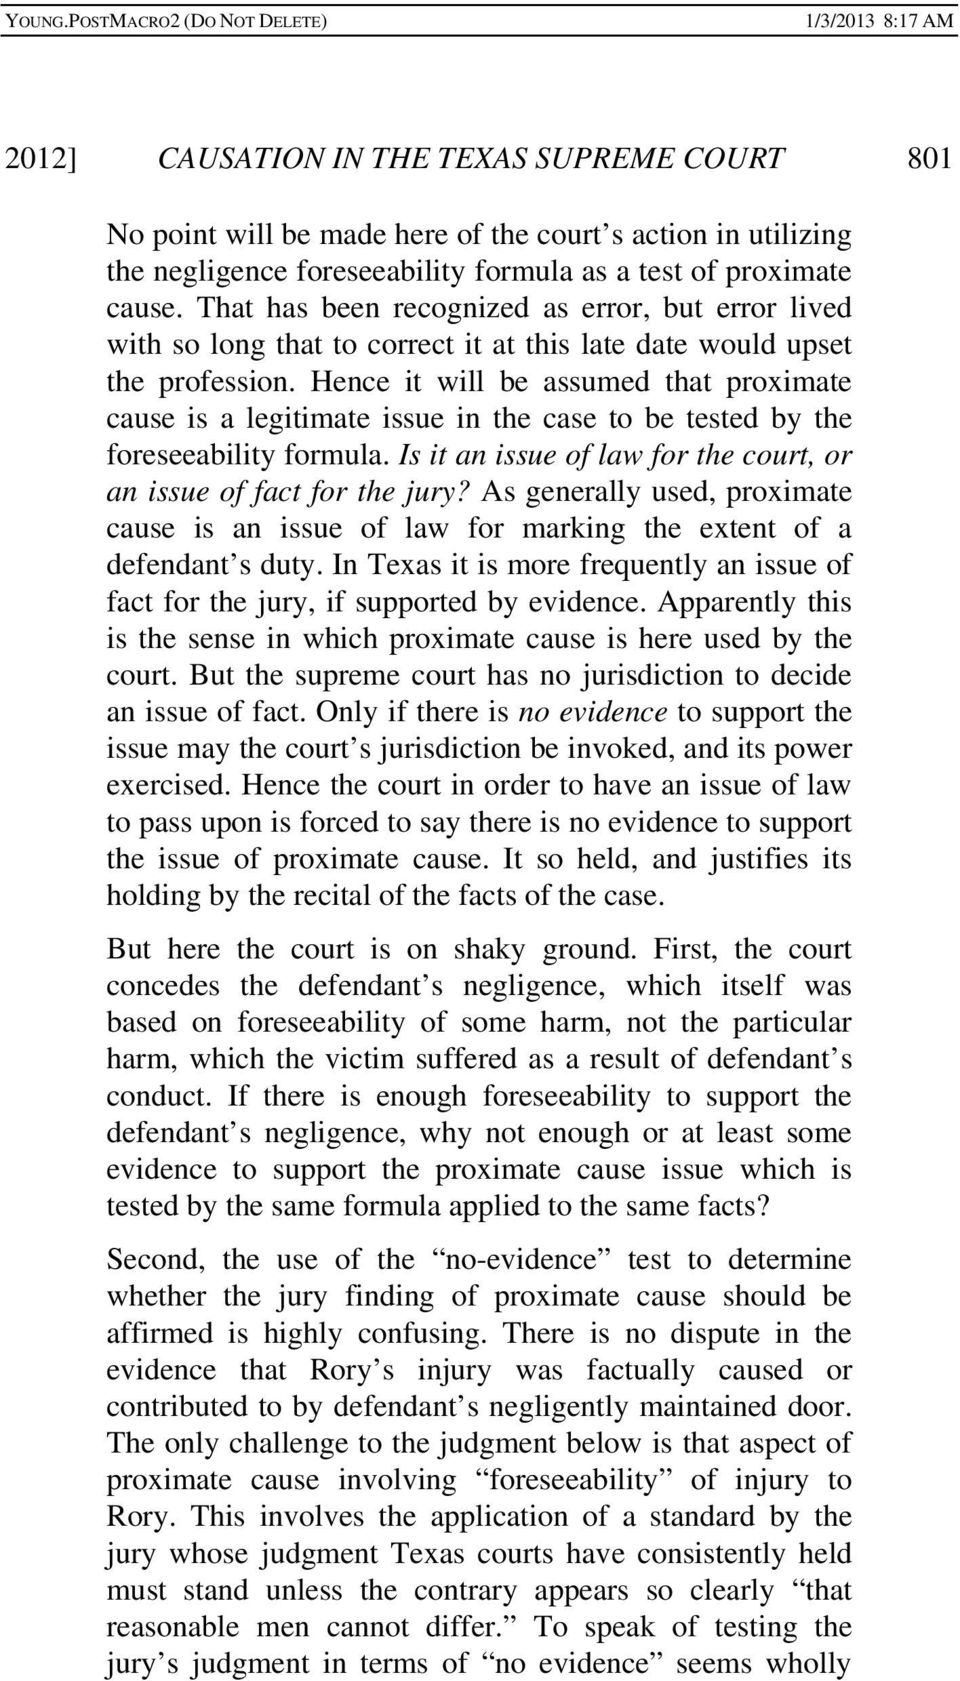 Hence it will be assumed that proximate cause is a legitimate issue in the case to be tested by the foreseeability formula. Is it an issue of law for the court, or an issue of fact for the jury?